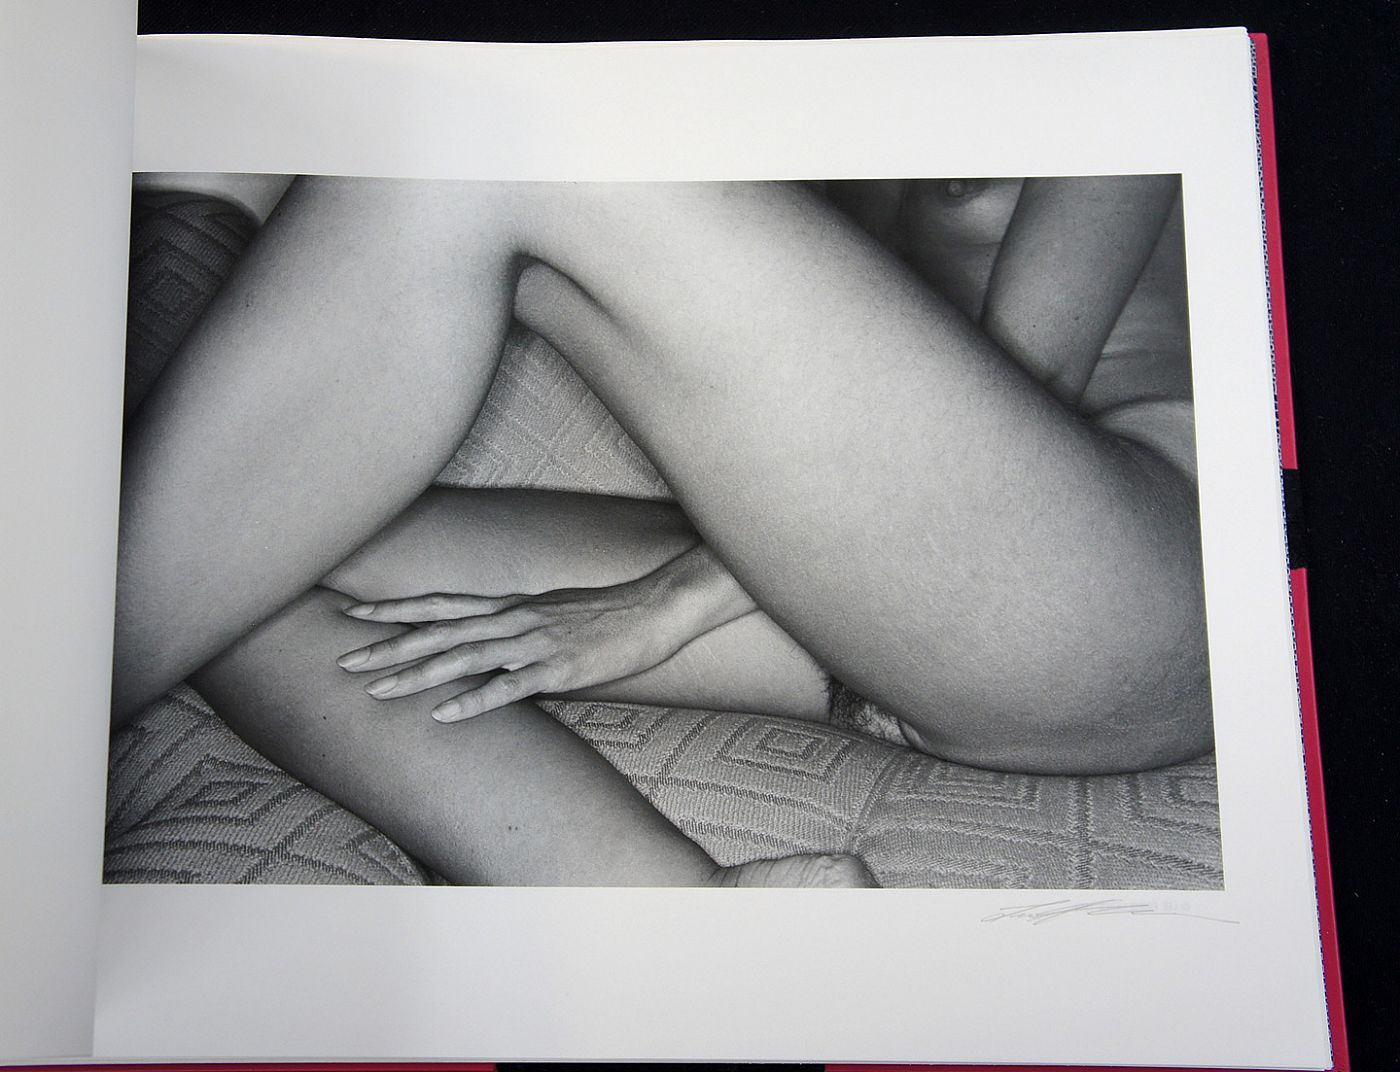 Lee Friedlander: 10 Nudes (Special Limited Edition Book of Ten Vintage Gelatin Silver Prints)